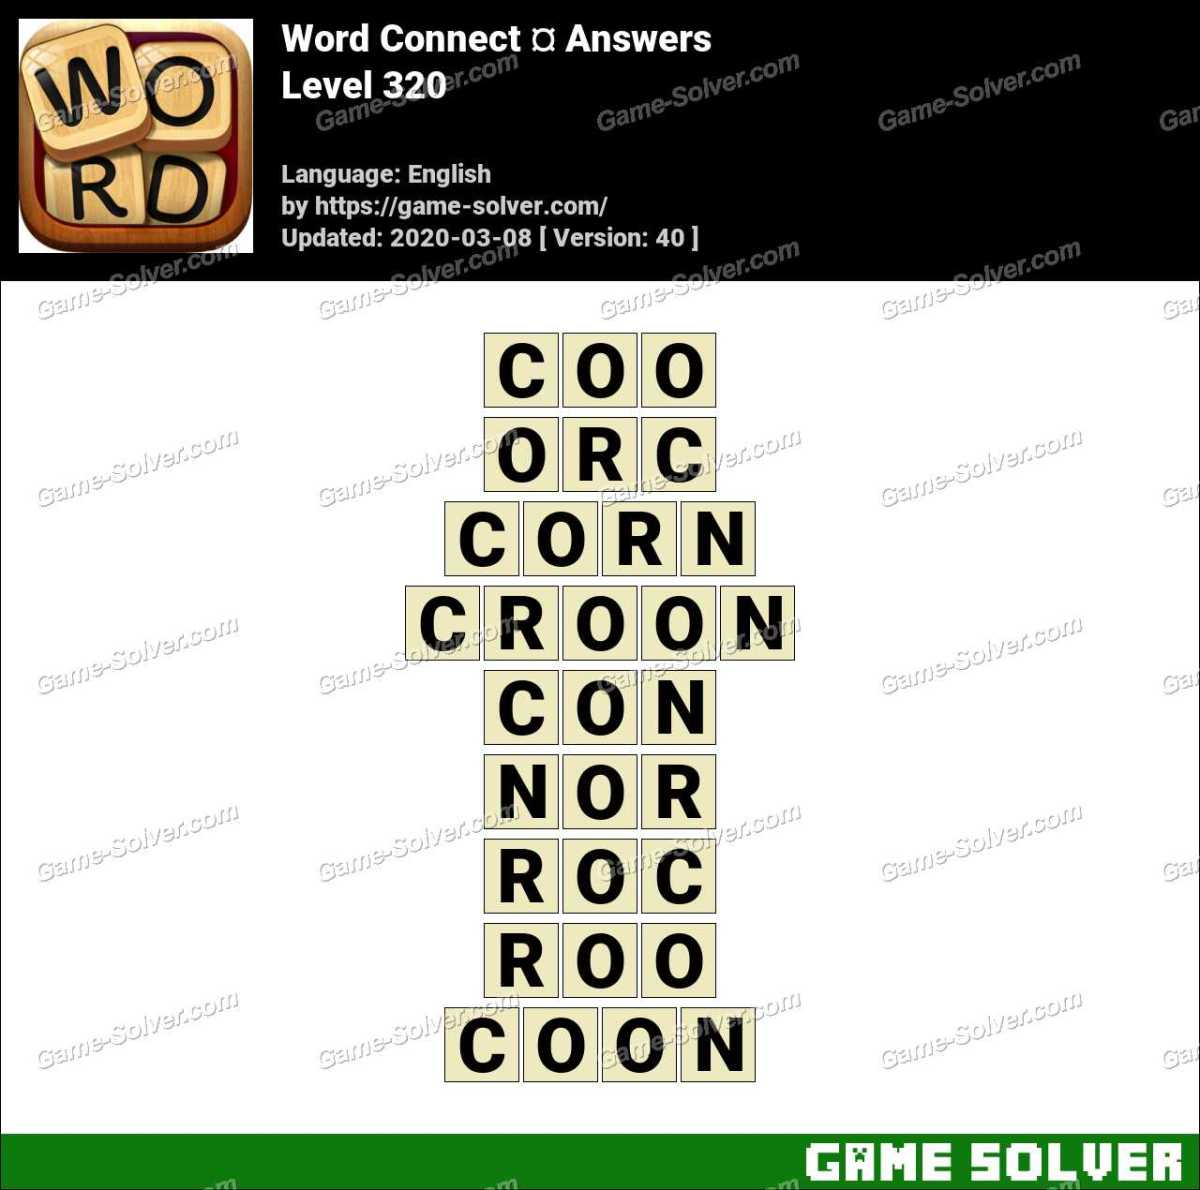 Word Connect Level 320 Answers